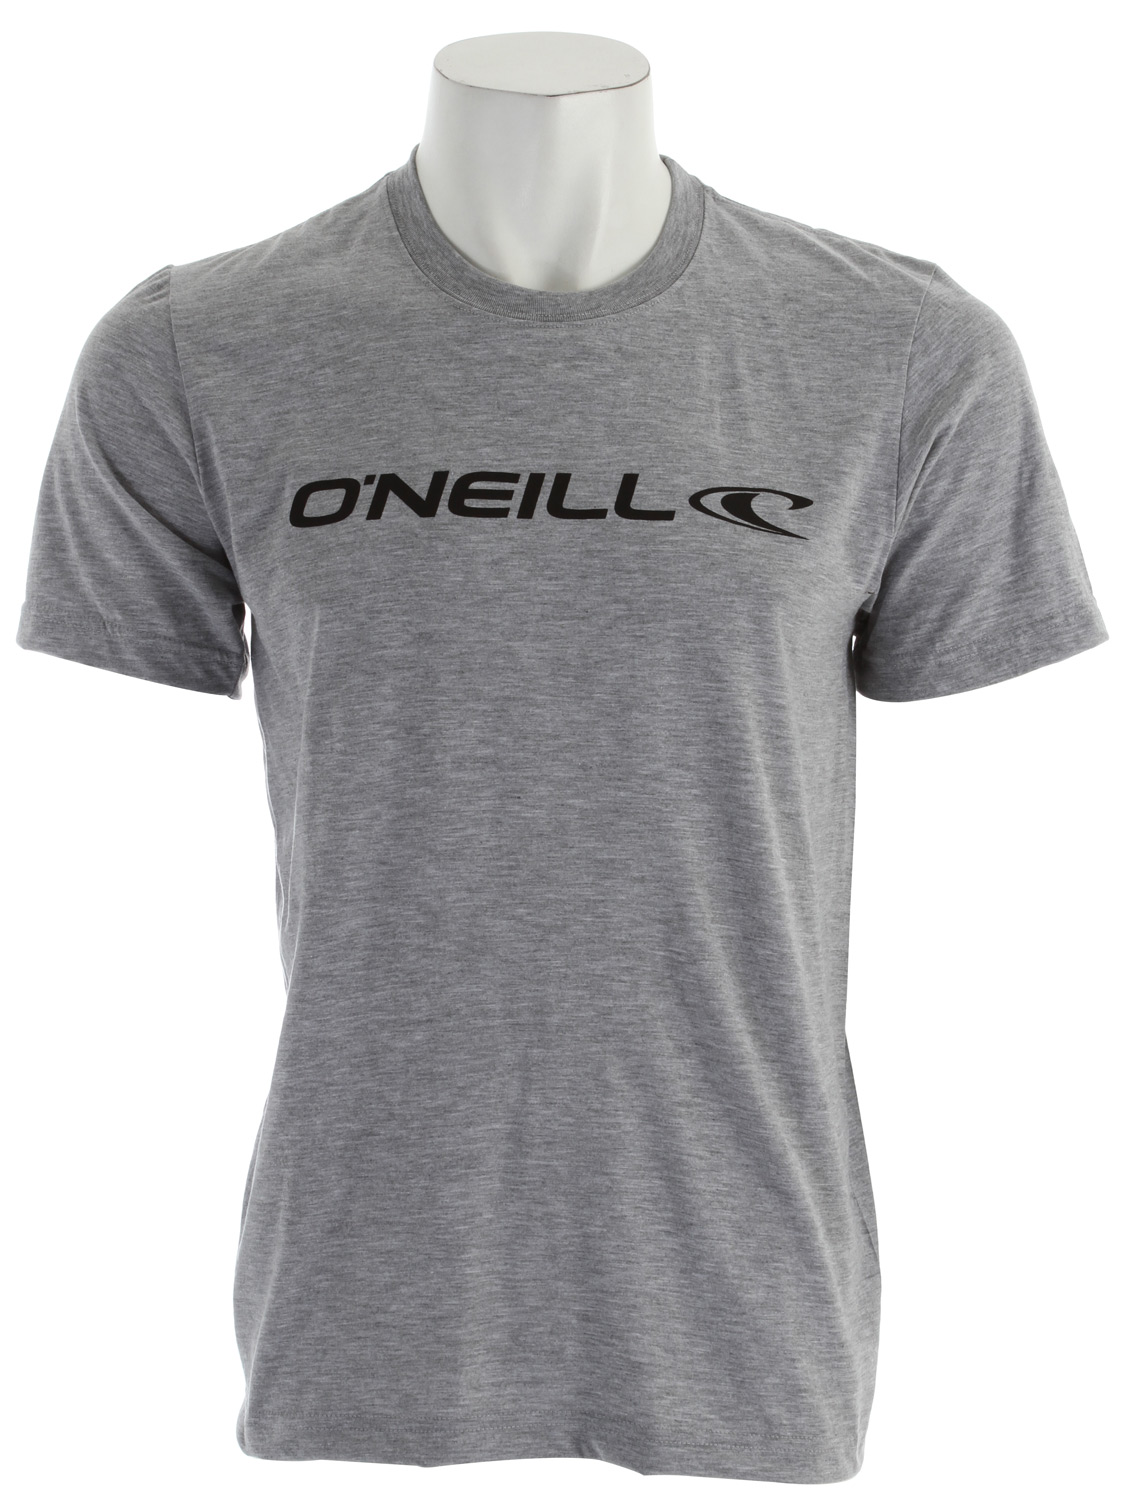 Surf O'Neill Lock Up Hybrid T-Shirt - $19.95